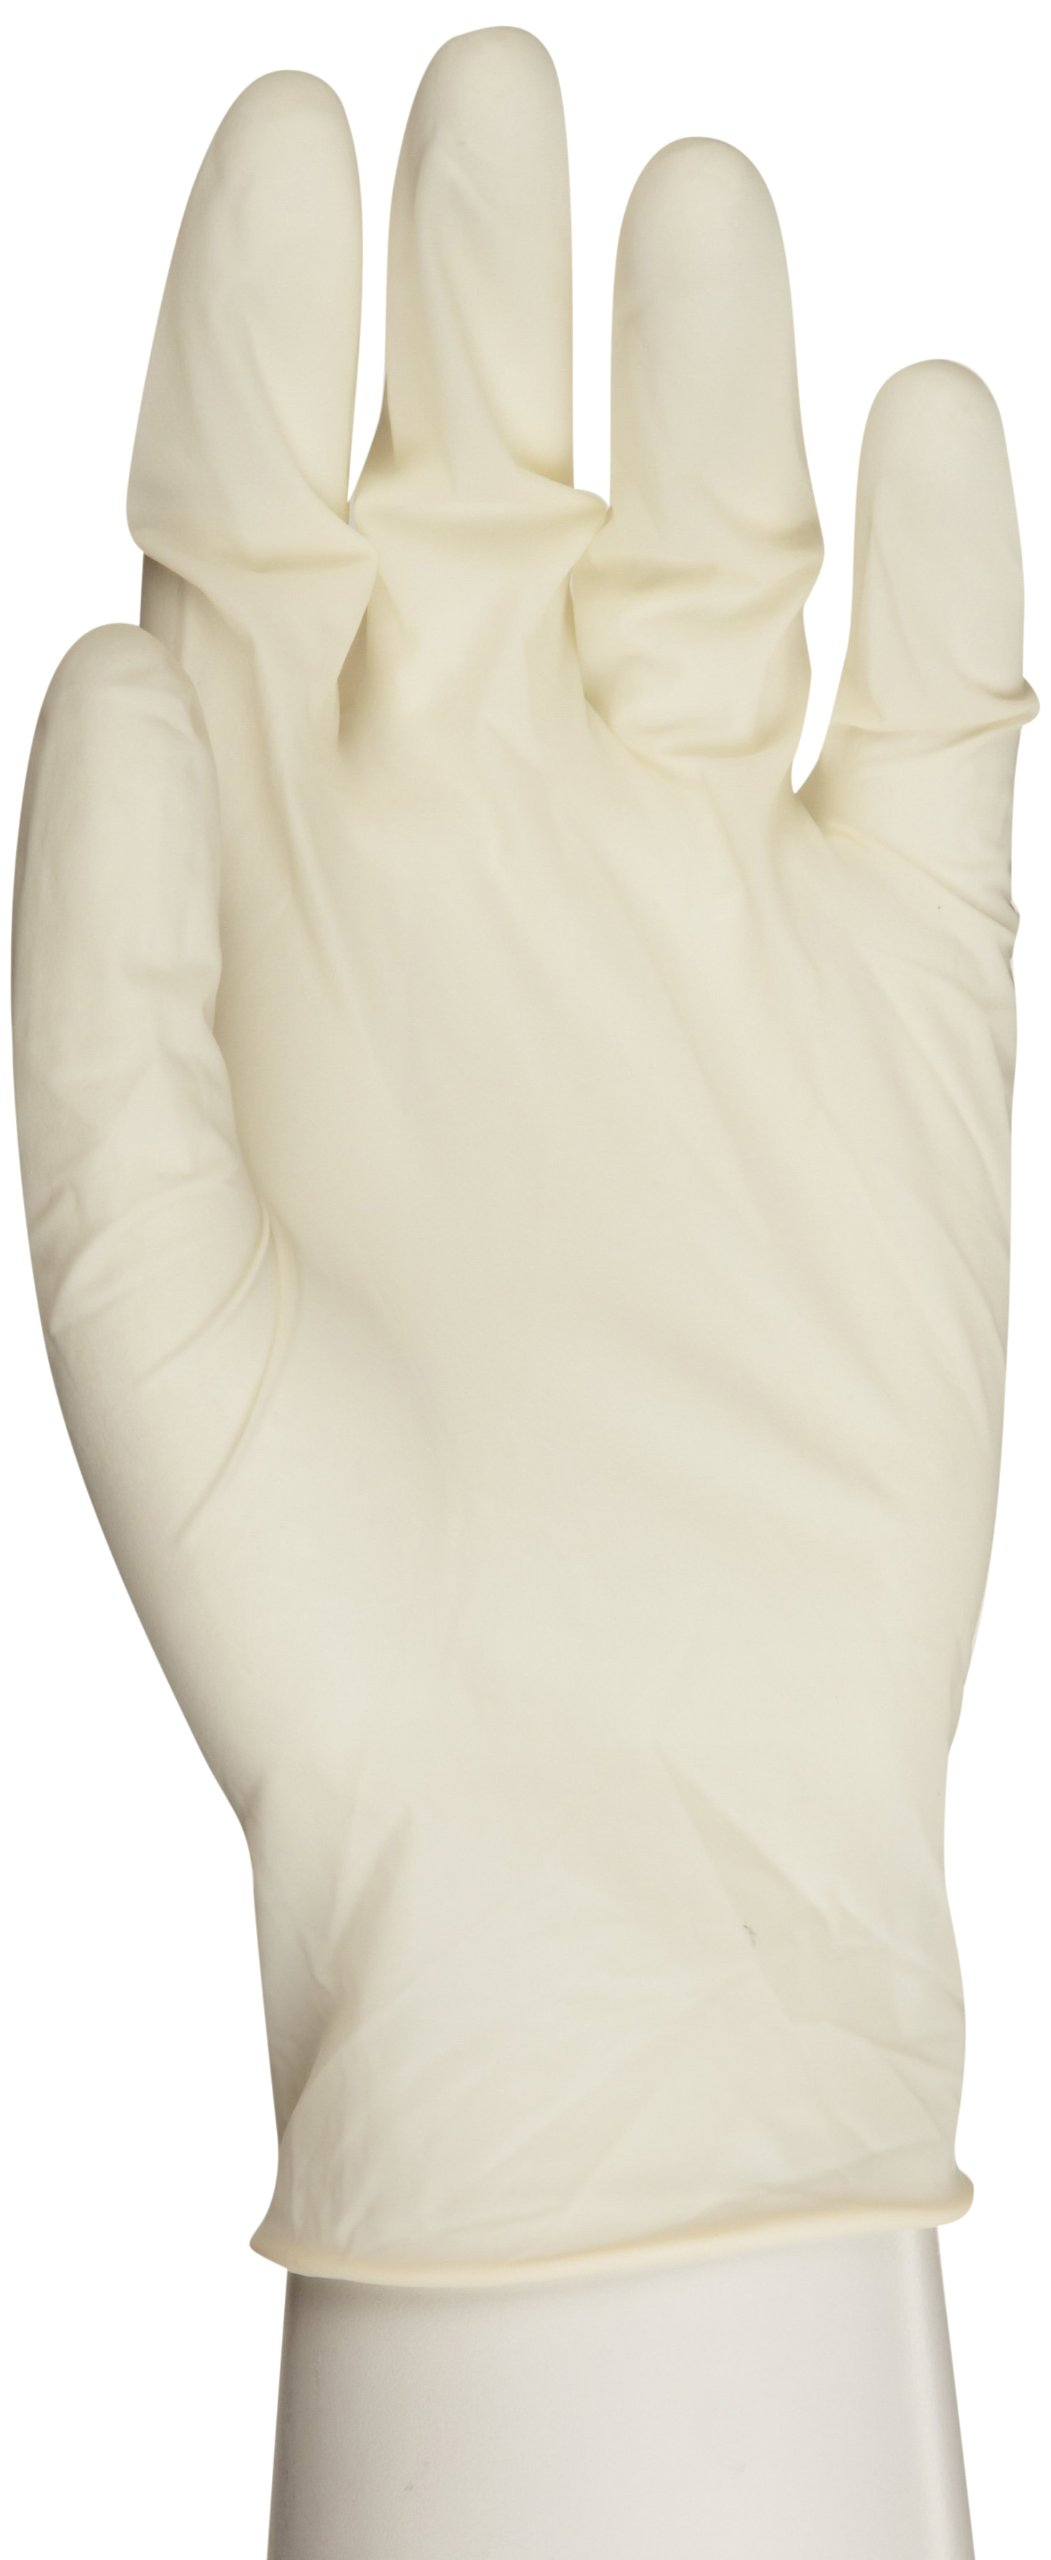 Microflex ComfortGrip Latex Glove, Powder Free, 9.6'' Length, 5 mils Thick, Small (Pack of 1000)